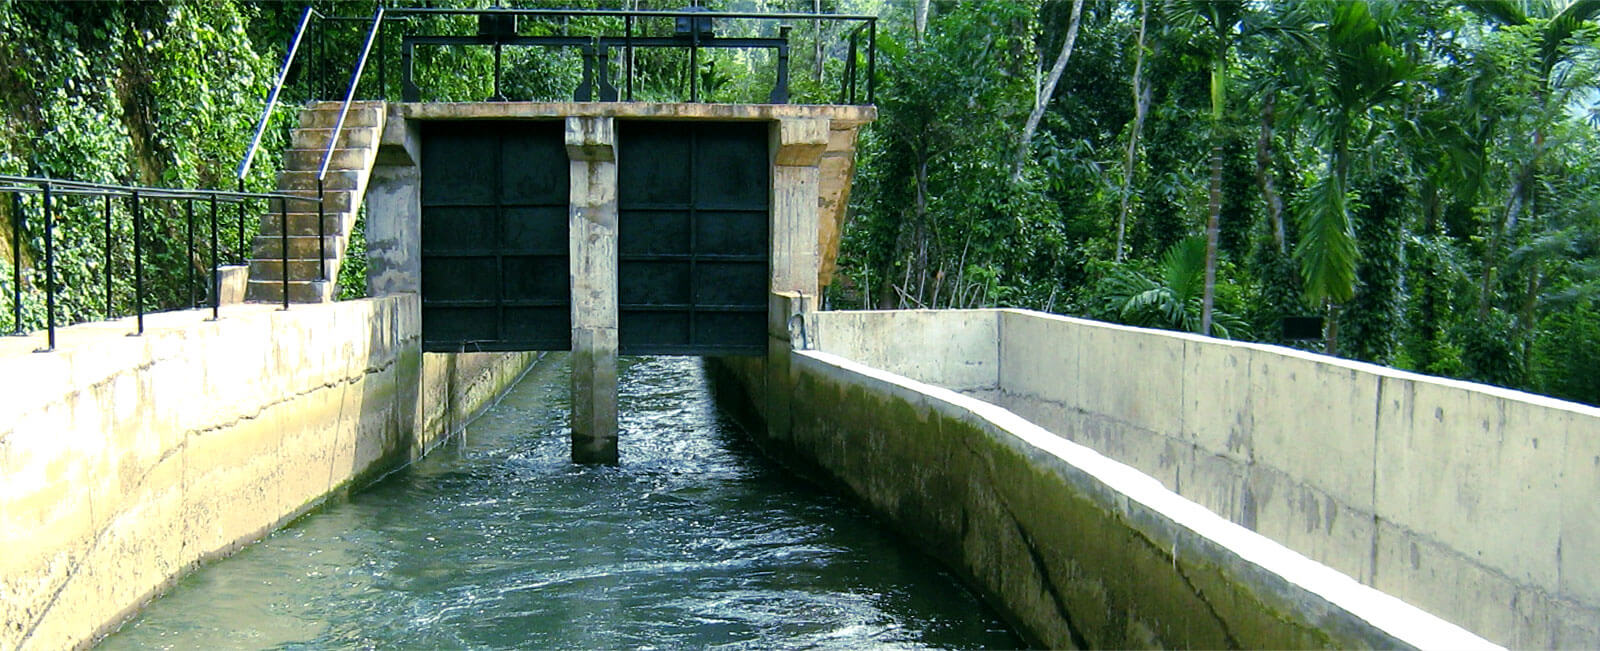 hydro power projects in Sri Lanka